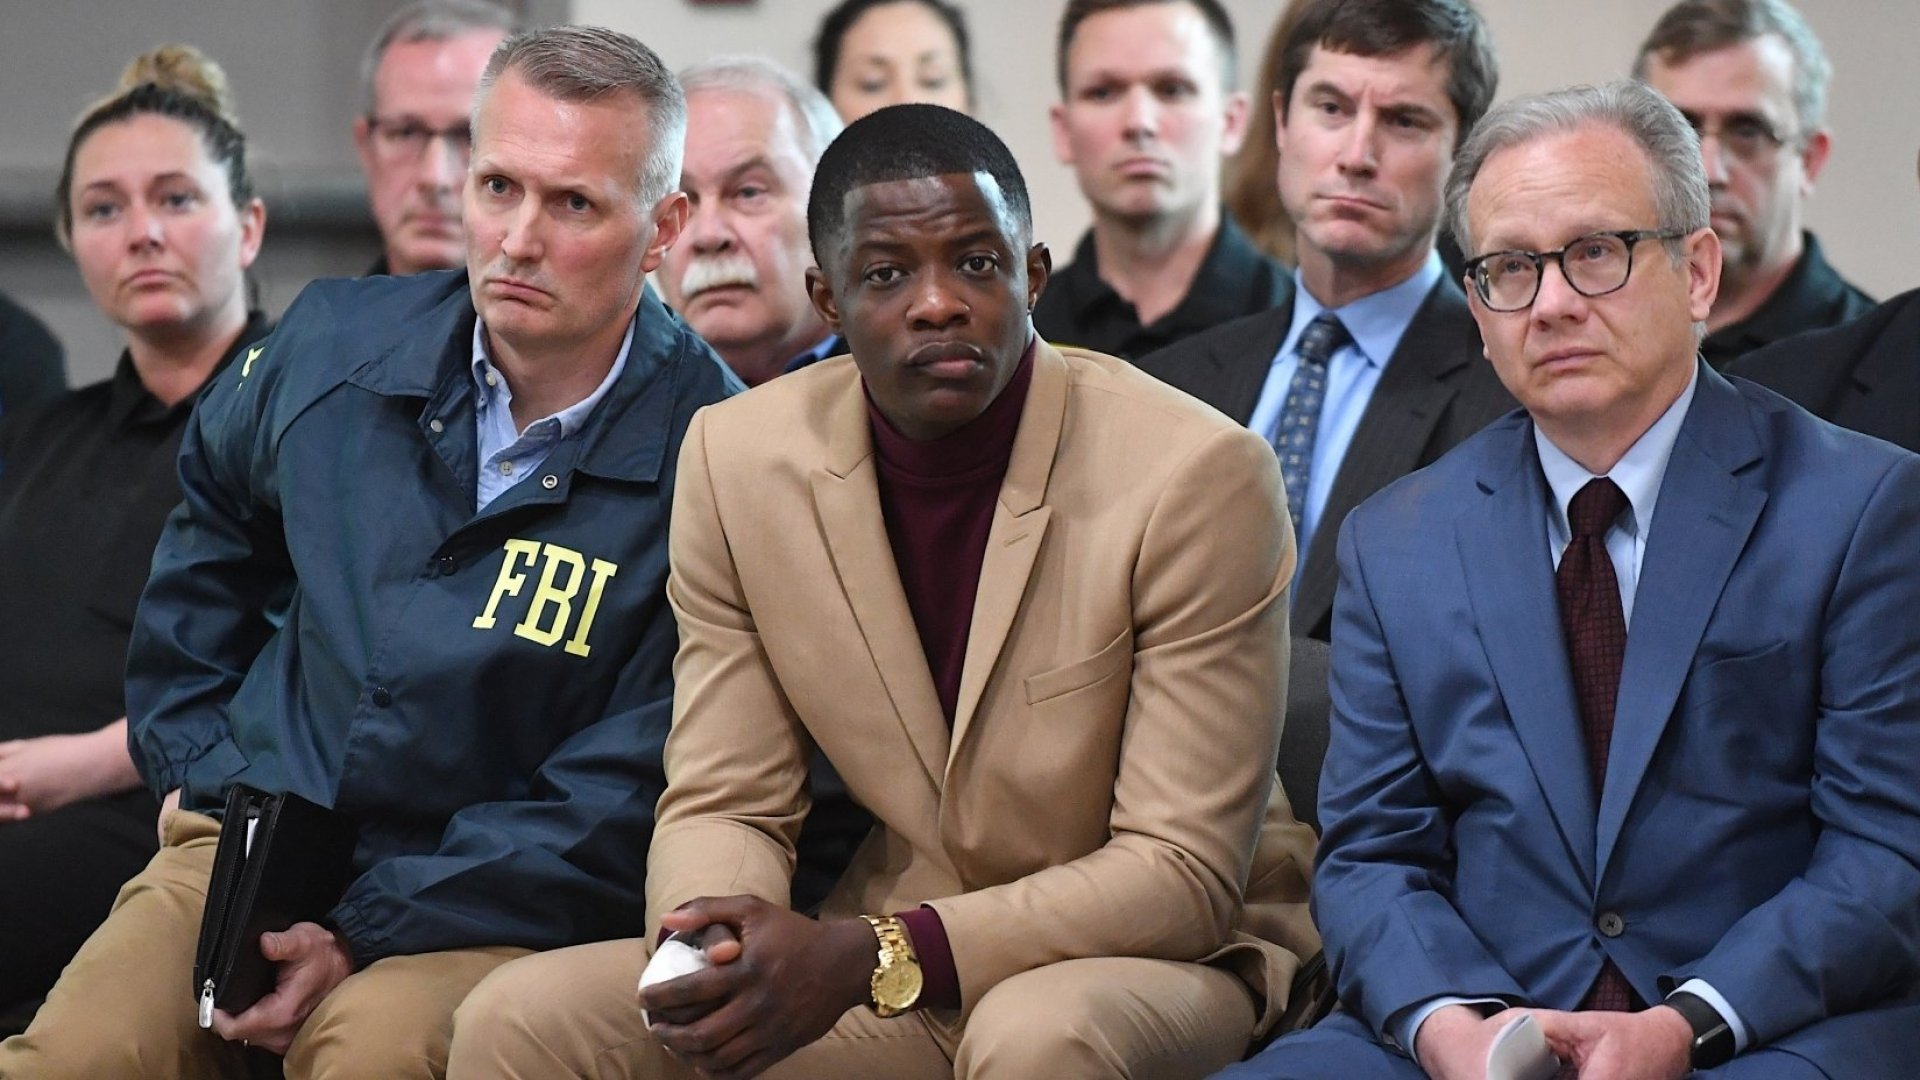 Waffle House patron James Shaw Jr. (center), who stopped the shooting at a Waffle House where a gunman opened fire killing four and injuring two, attends a press conference with FBI special agent in charge Matthew Espenshade (left) and Metro Nashville mayor David Briley (right) on April 22, 2018 in Nashville, Tennessee.